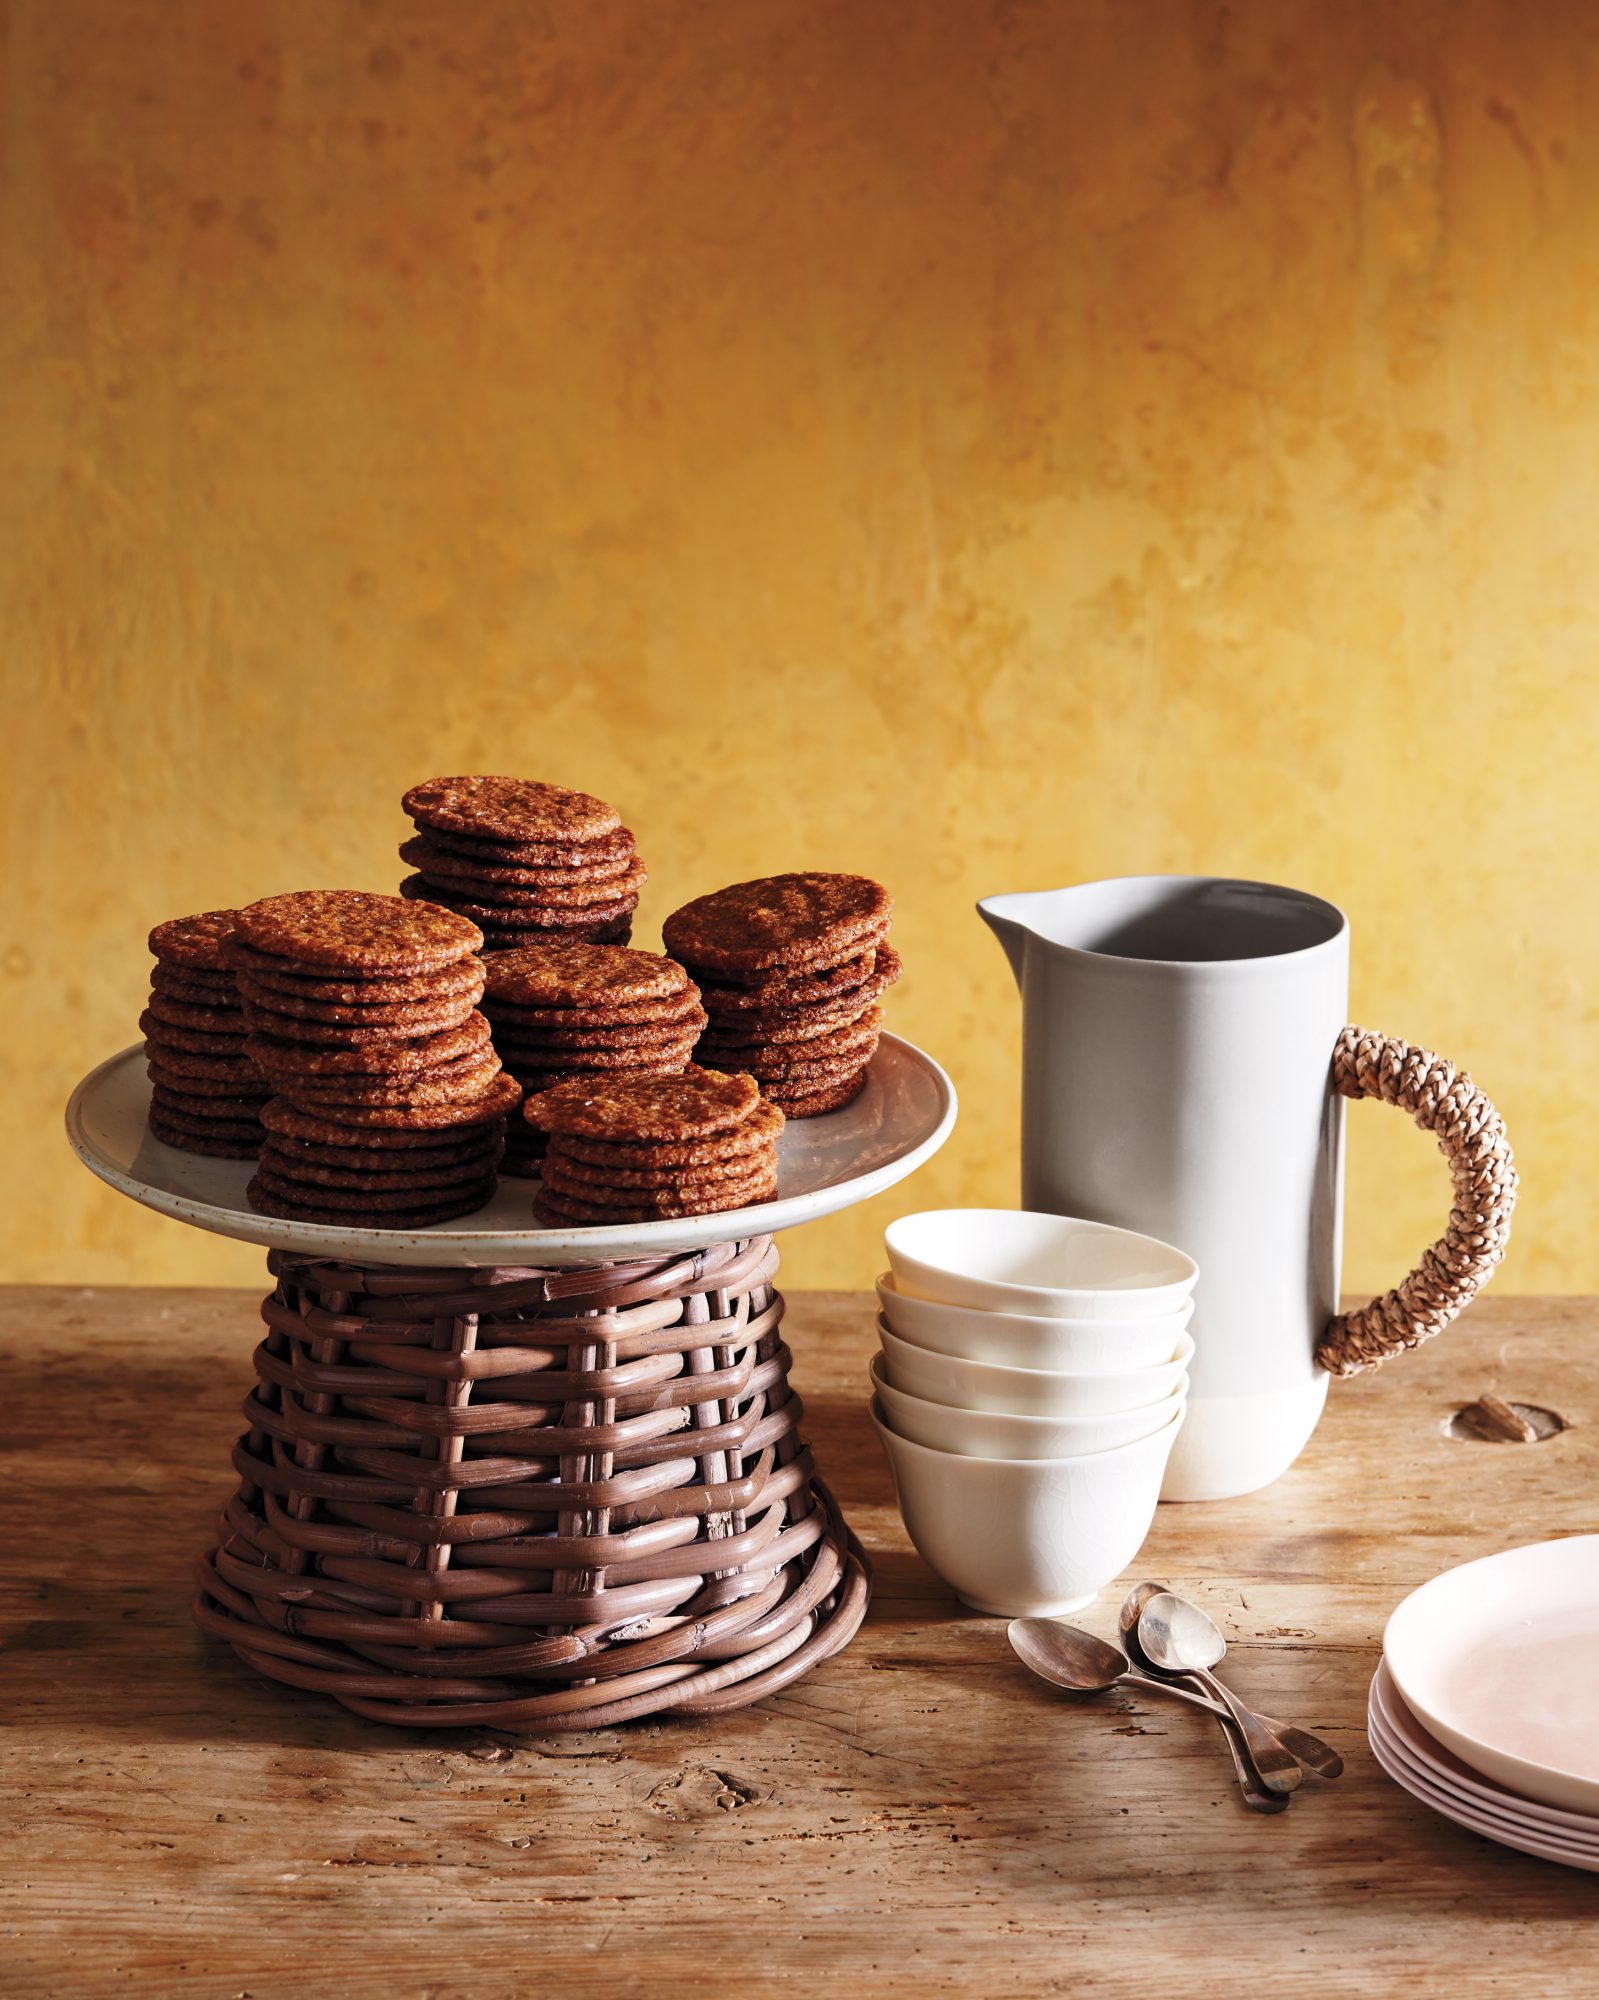 cake plate with cookies